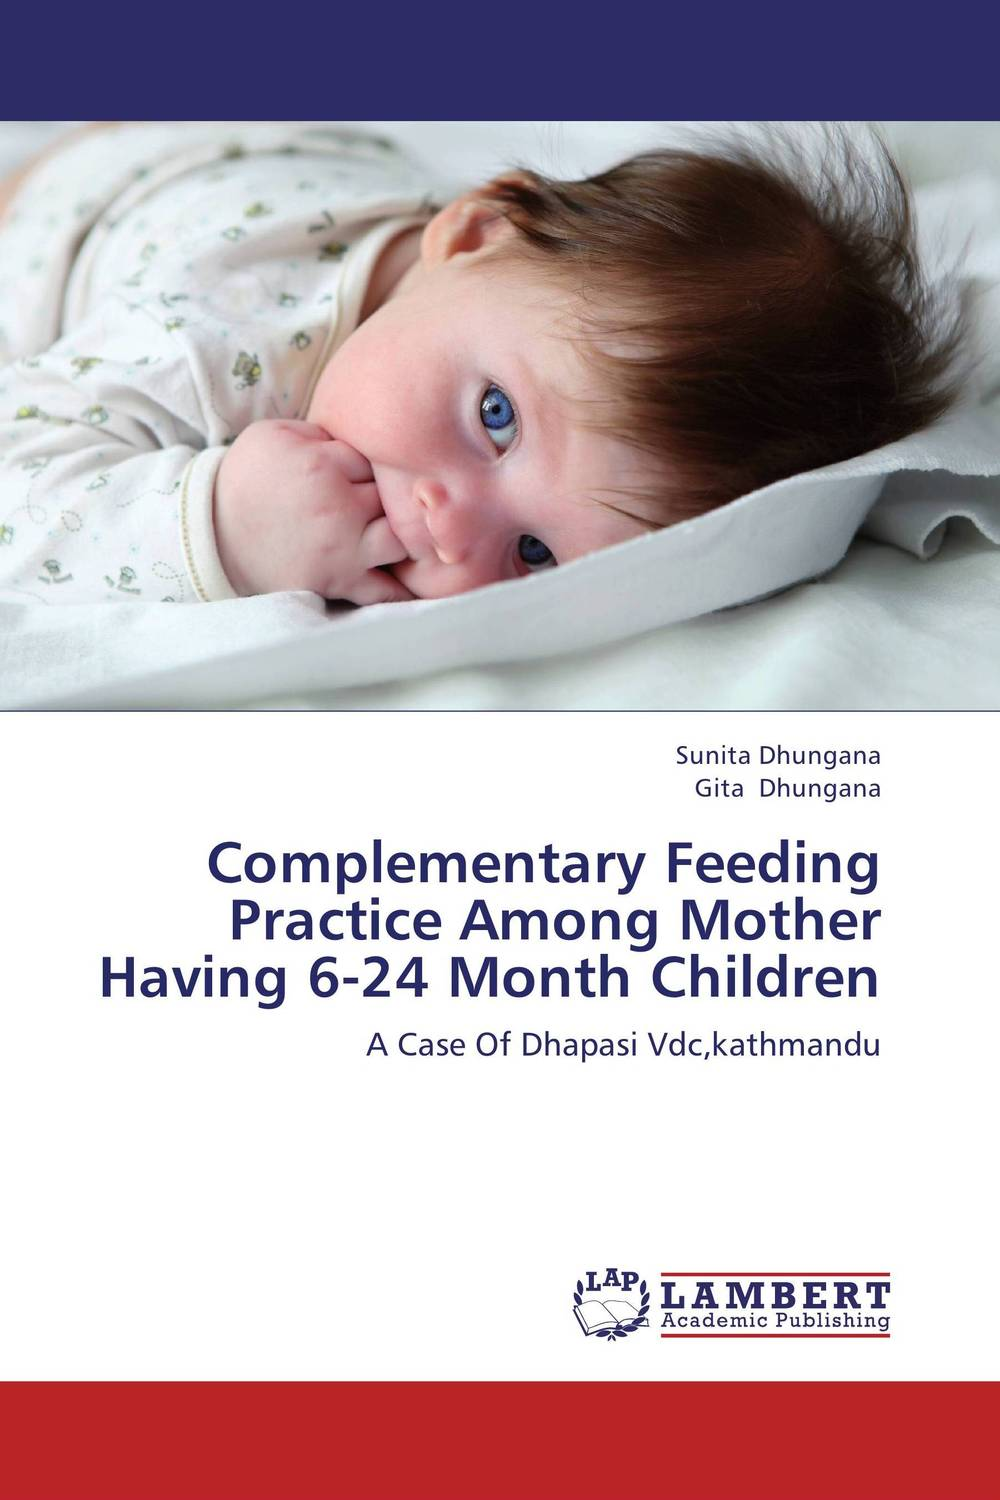 Complementary Feeding Practice Among Mother Having 6-24 Month Children